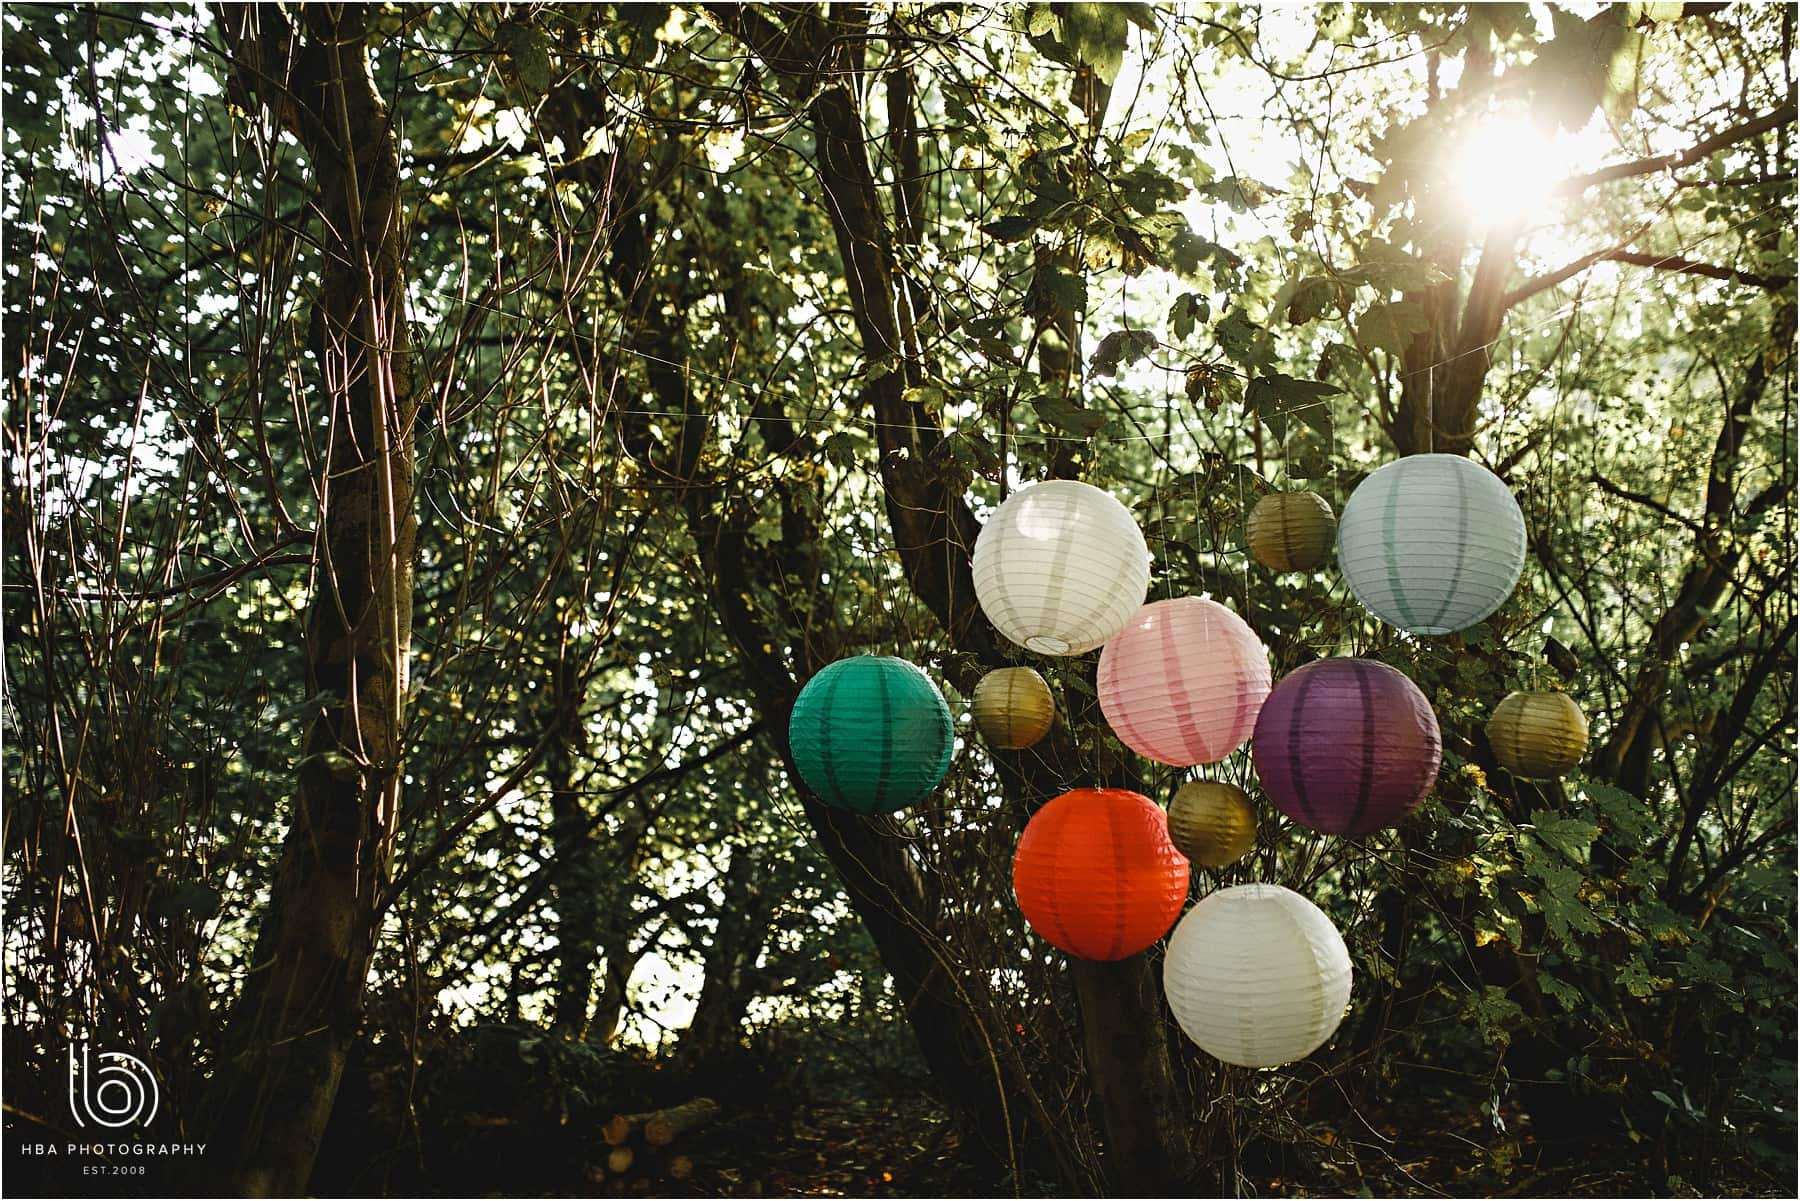 Hanging Lantern wedding decorations in the wood